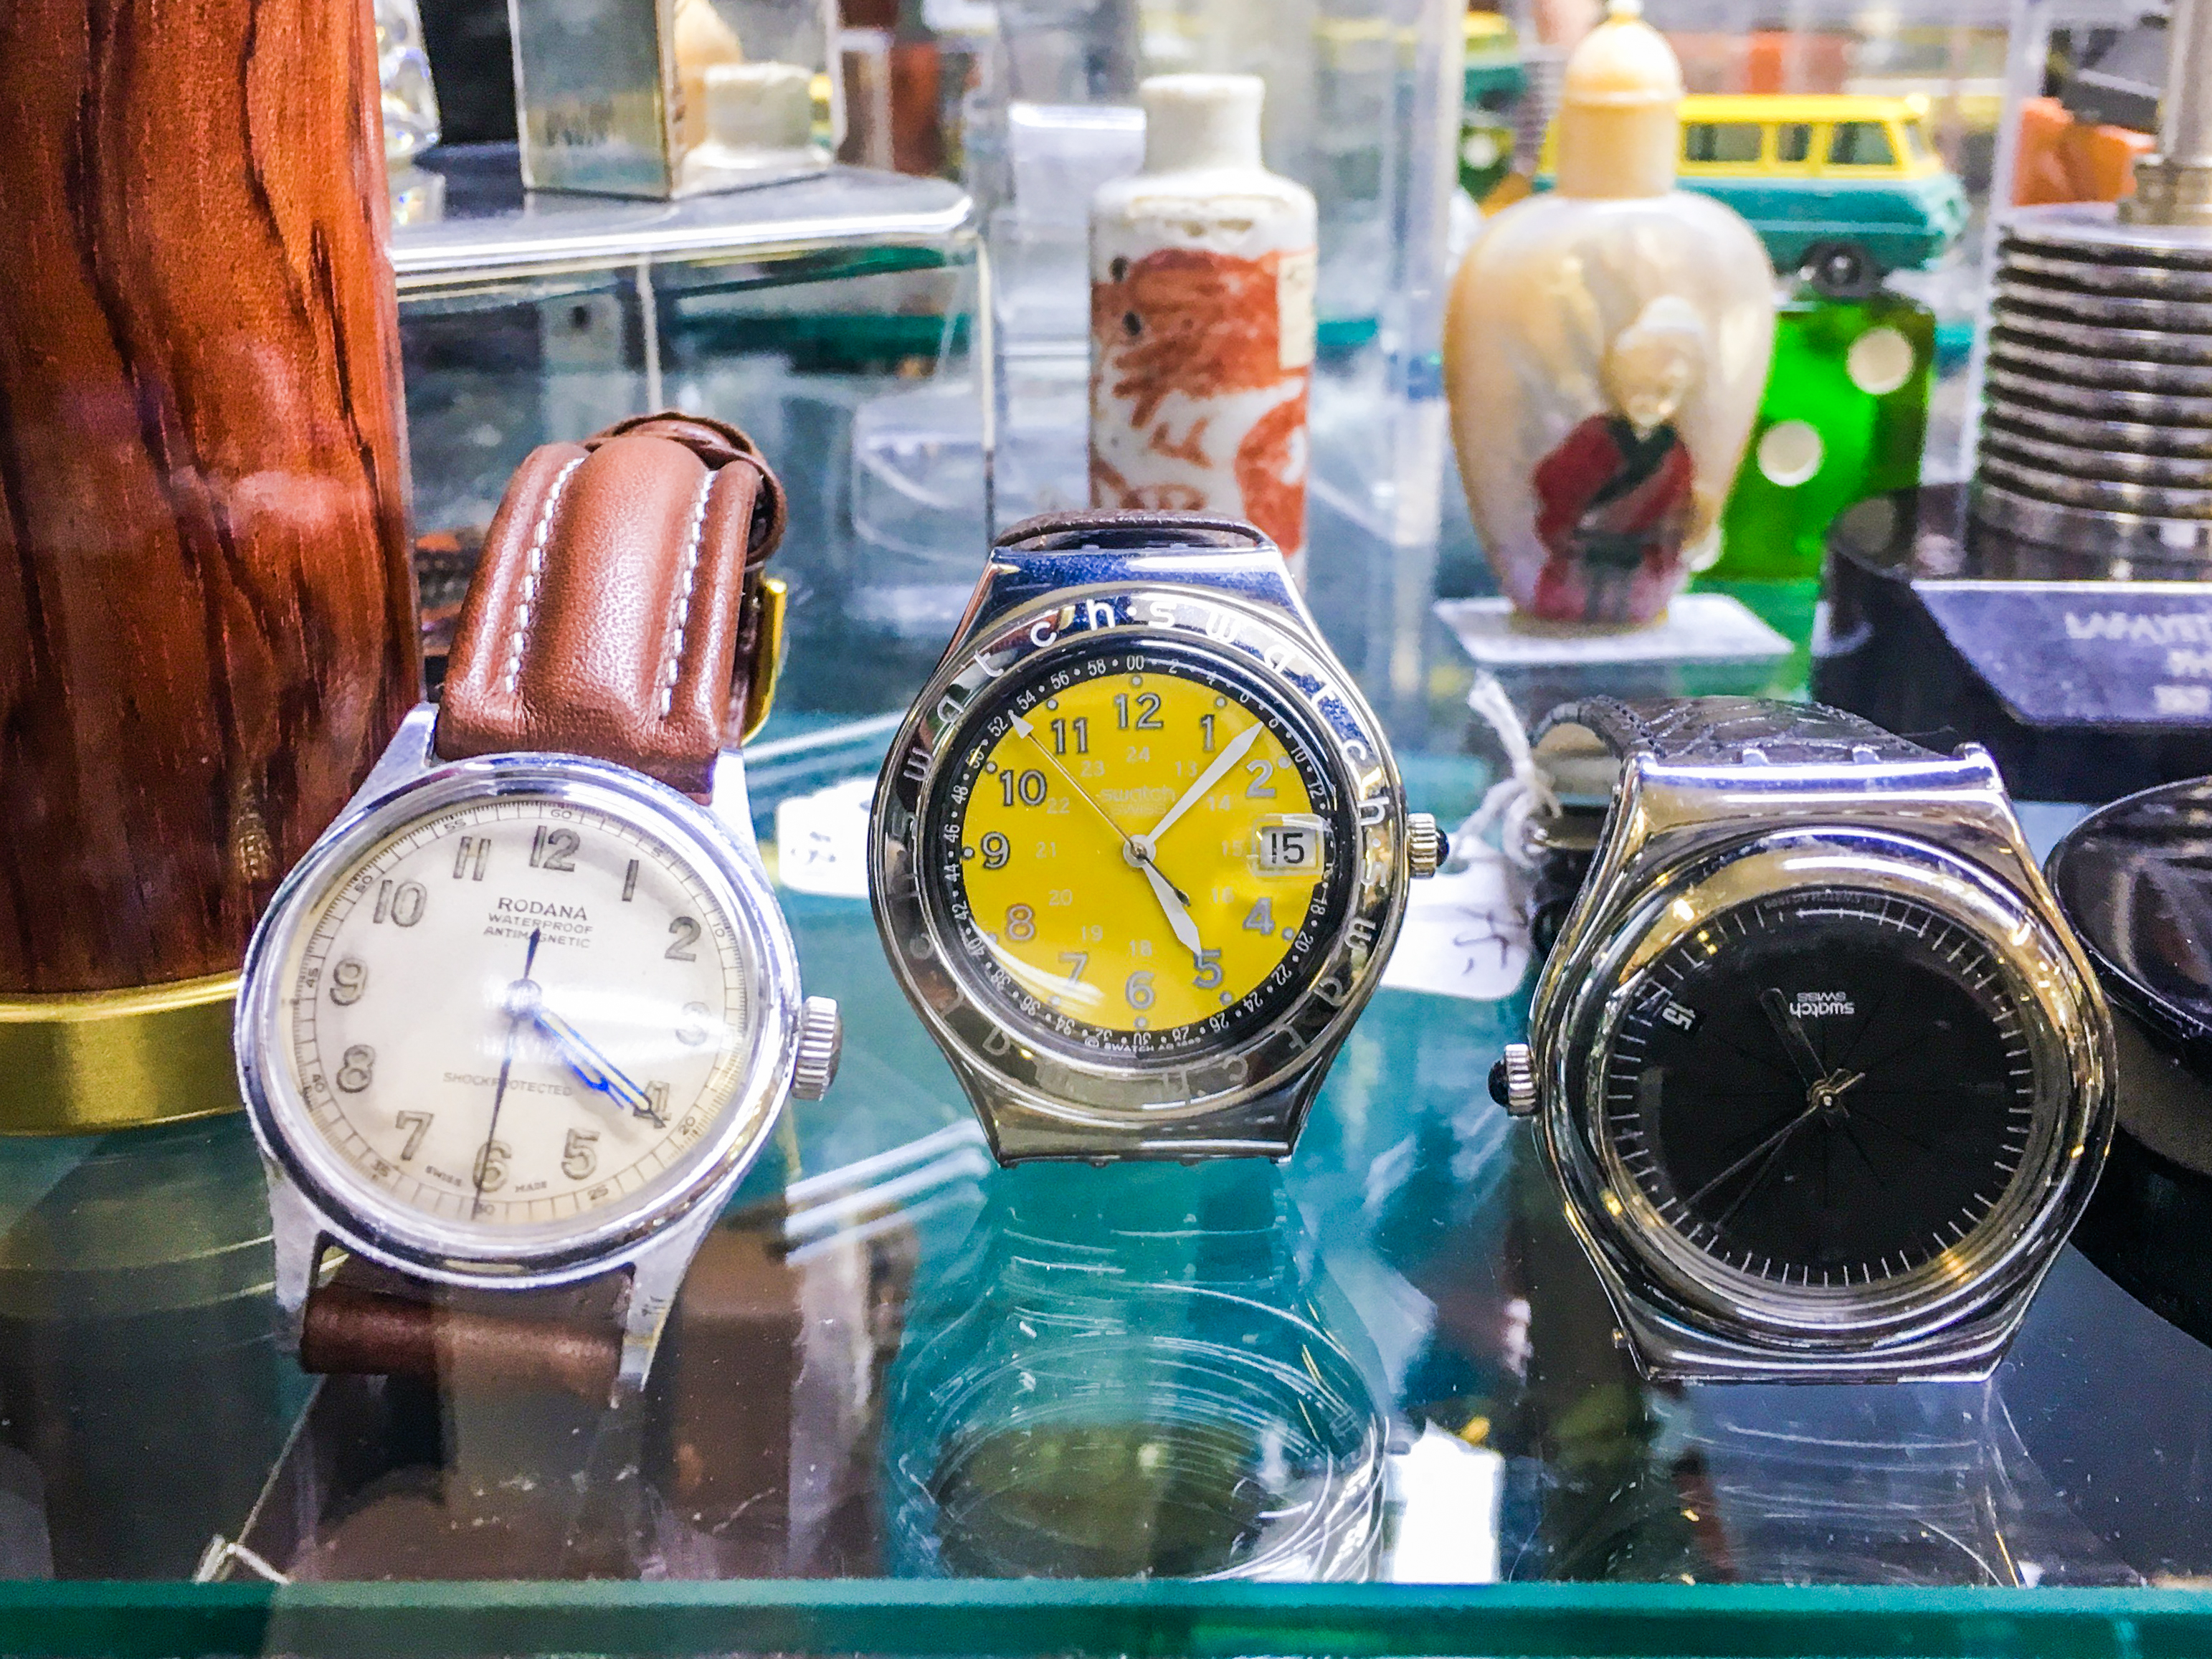 watches at stuff vintage, my favorite place to go vintage shopping in san franciscos mission district